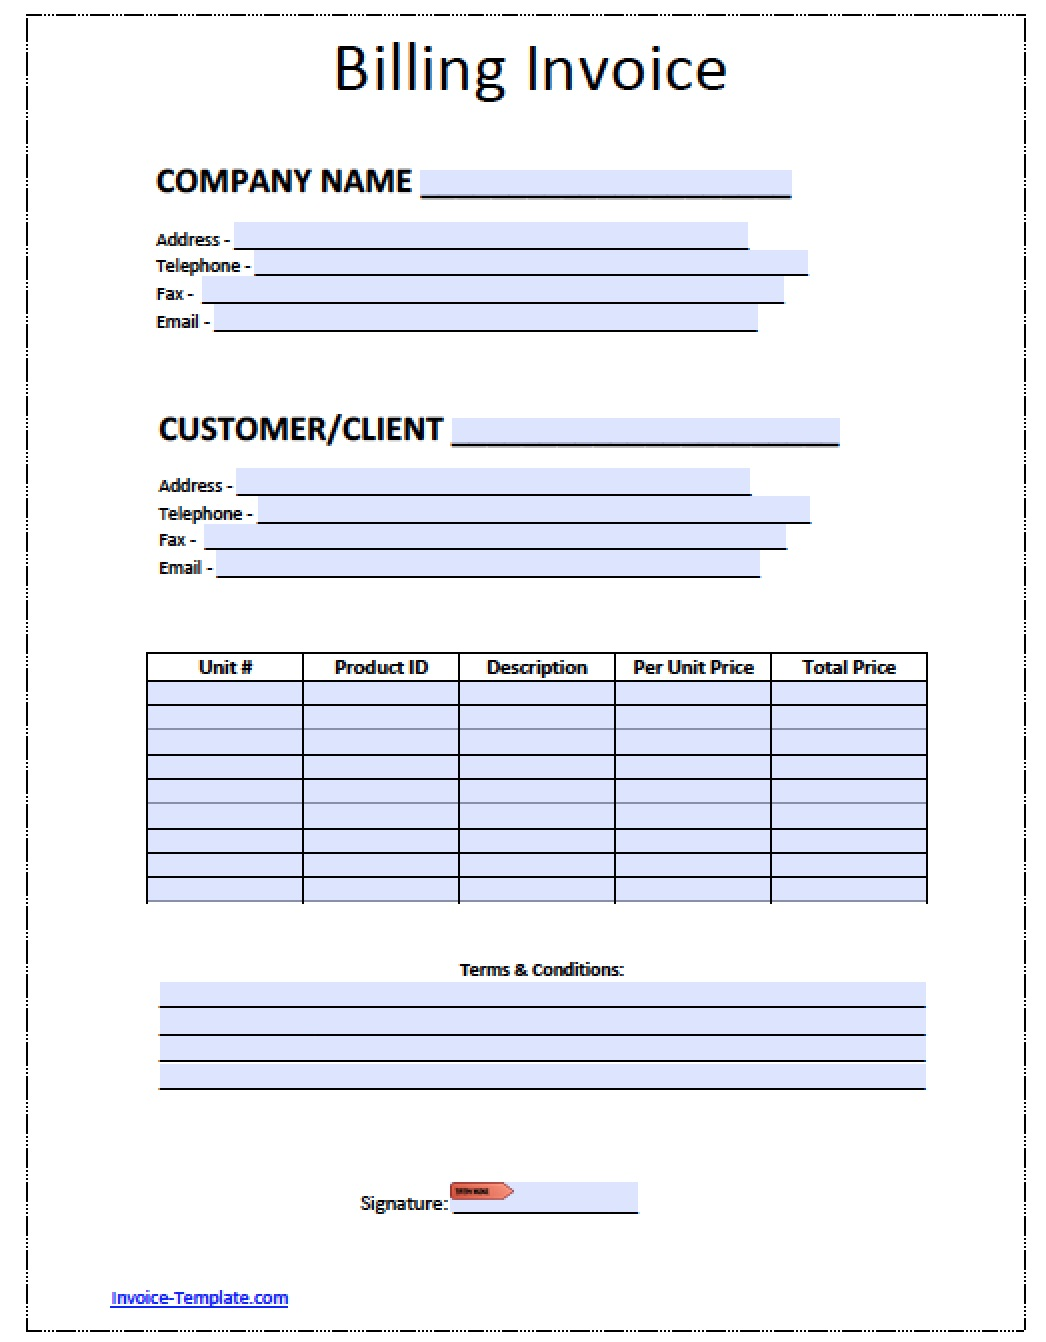 Shopdesignsus  Marvellous Billing Invoice Invoices Faq U Cloudflare Support Billing  With Extraordinary Free Billing Invoice Template  Excel  Pdf  Word Doc  Billing With Alluring Send Invoice Paypal Also Invoice Me In Addition Freelance Invoice And Construction Invoice As Well As Free Invoice Template Excel Additionally Invoice Template Google Doc From Happytomco With Shopdesignsus  Extraordinary Billing Invoice Invoices Faq U Cloudflare Support Billing  With Alluring Free Billing Invoice Template  Excel  Pdf  Word Doc  Billing And Marvellous Send Invoice Paypal Also Invoice Me In Addition Freelance Invoice From Happytomco